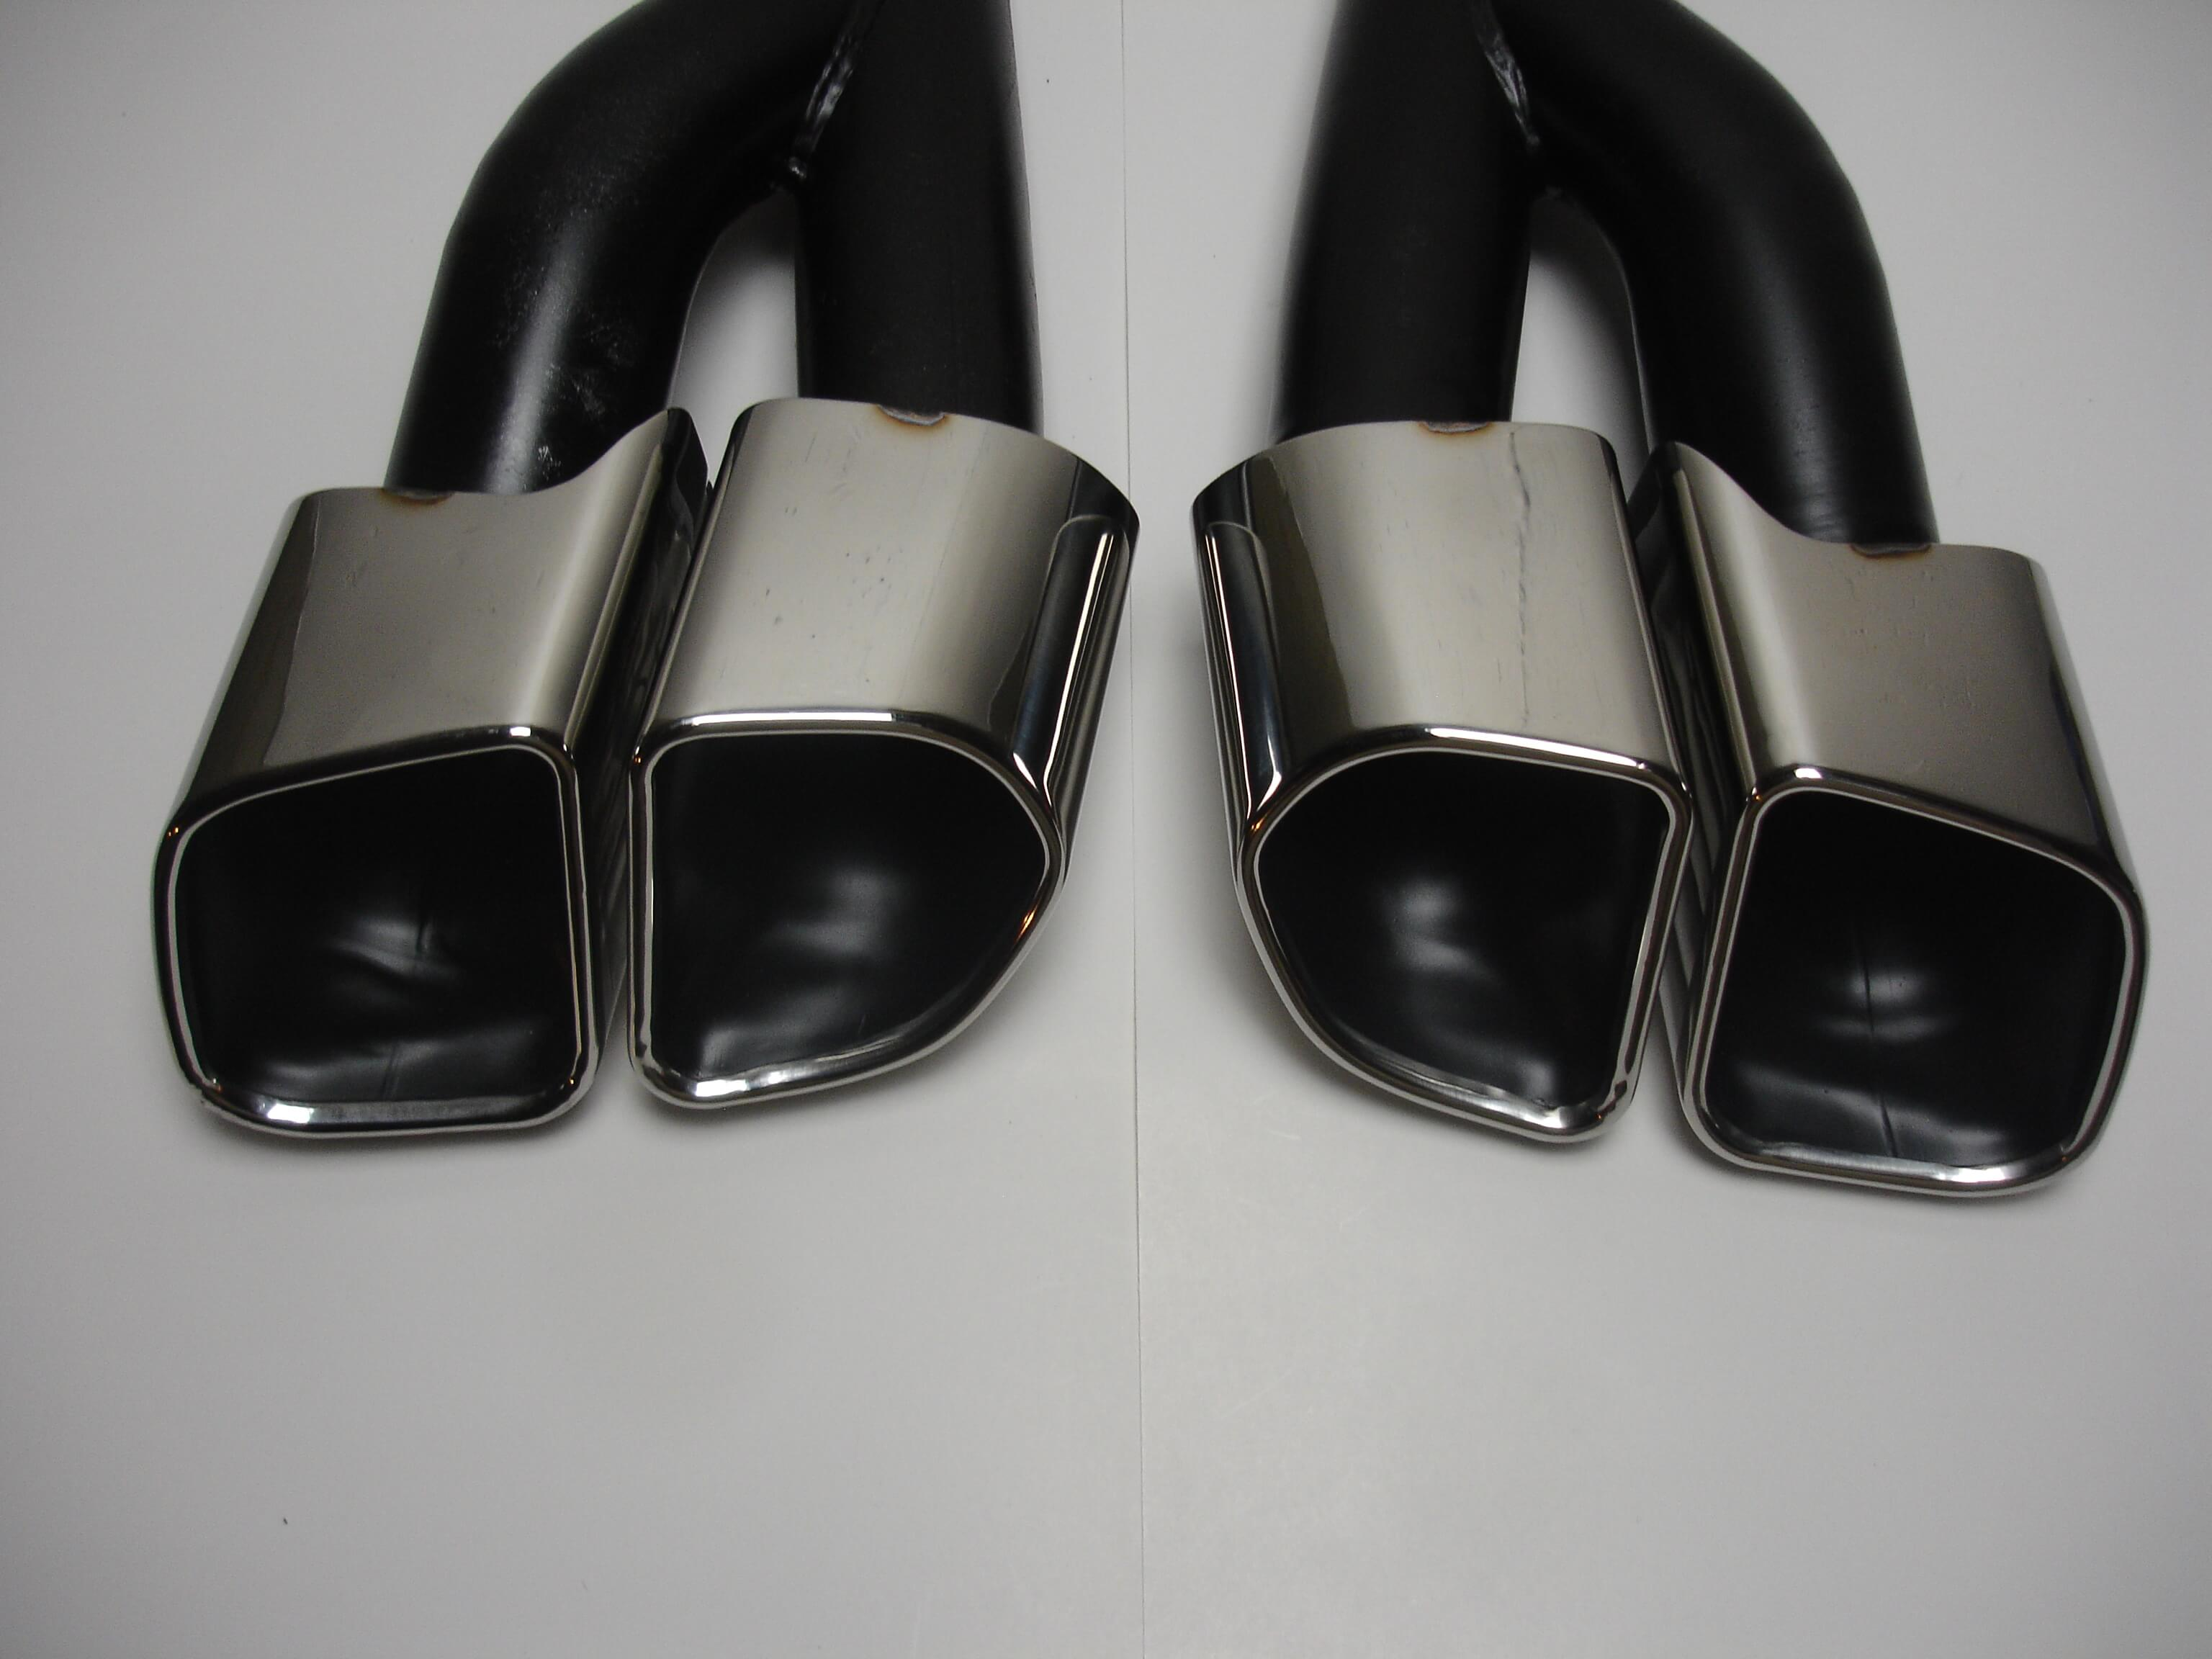 Porsche Cayenne 15-17 958.2 V6 Diesel and Hybrid Turbo Style Exhaust Tips